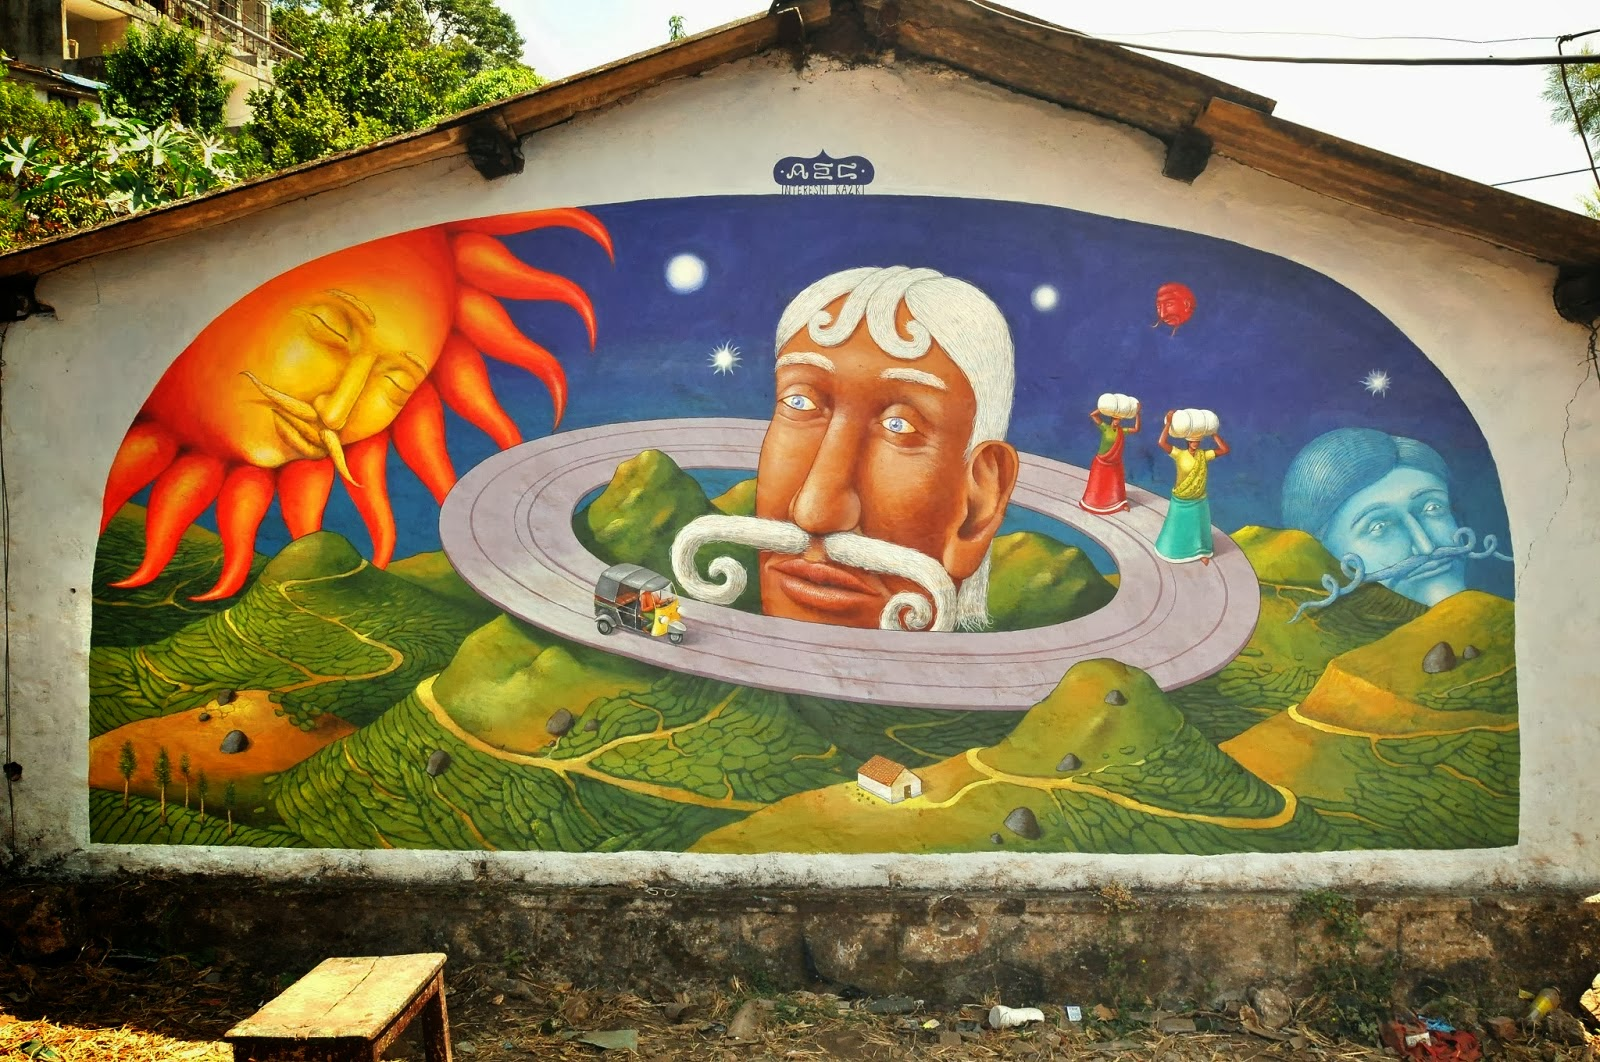 AEC from Interesni Kazki is still in India (Part I), where he just finished working on these two new murals in Verkala and Pothamedu.